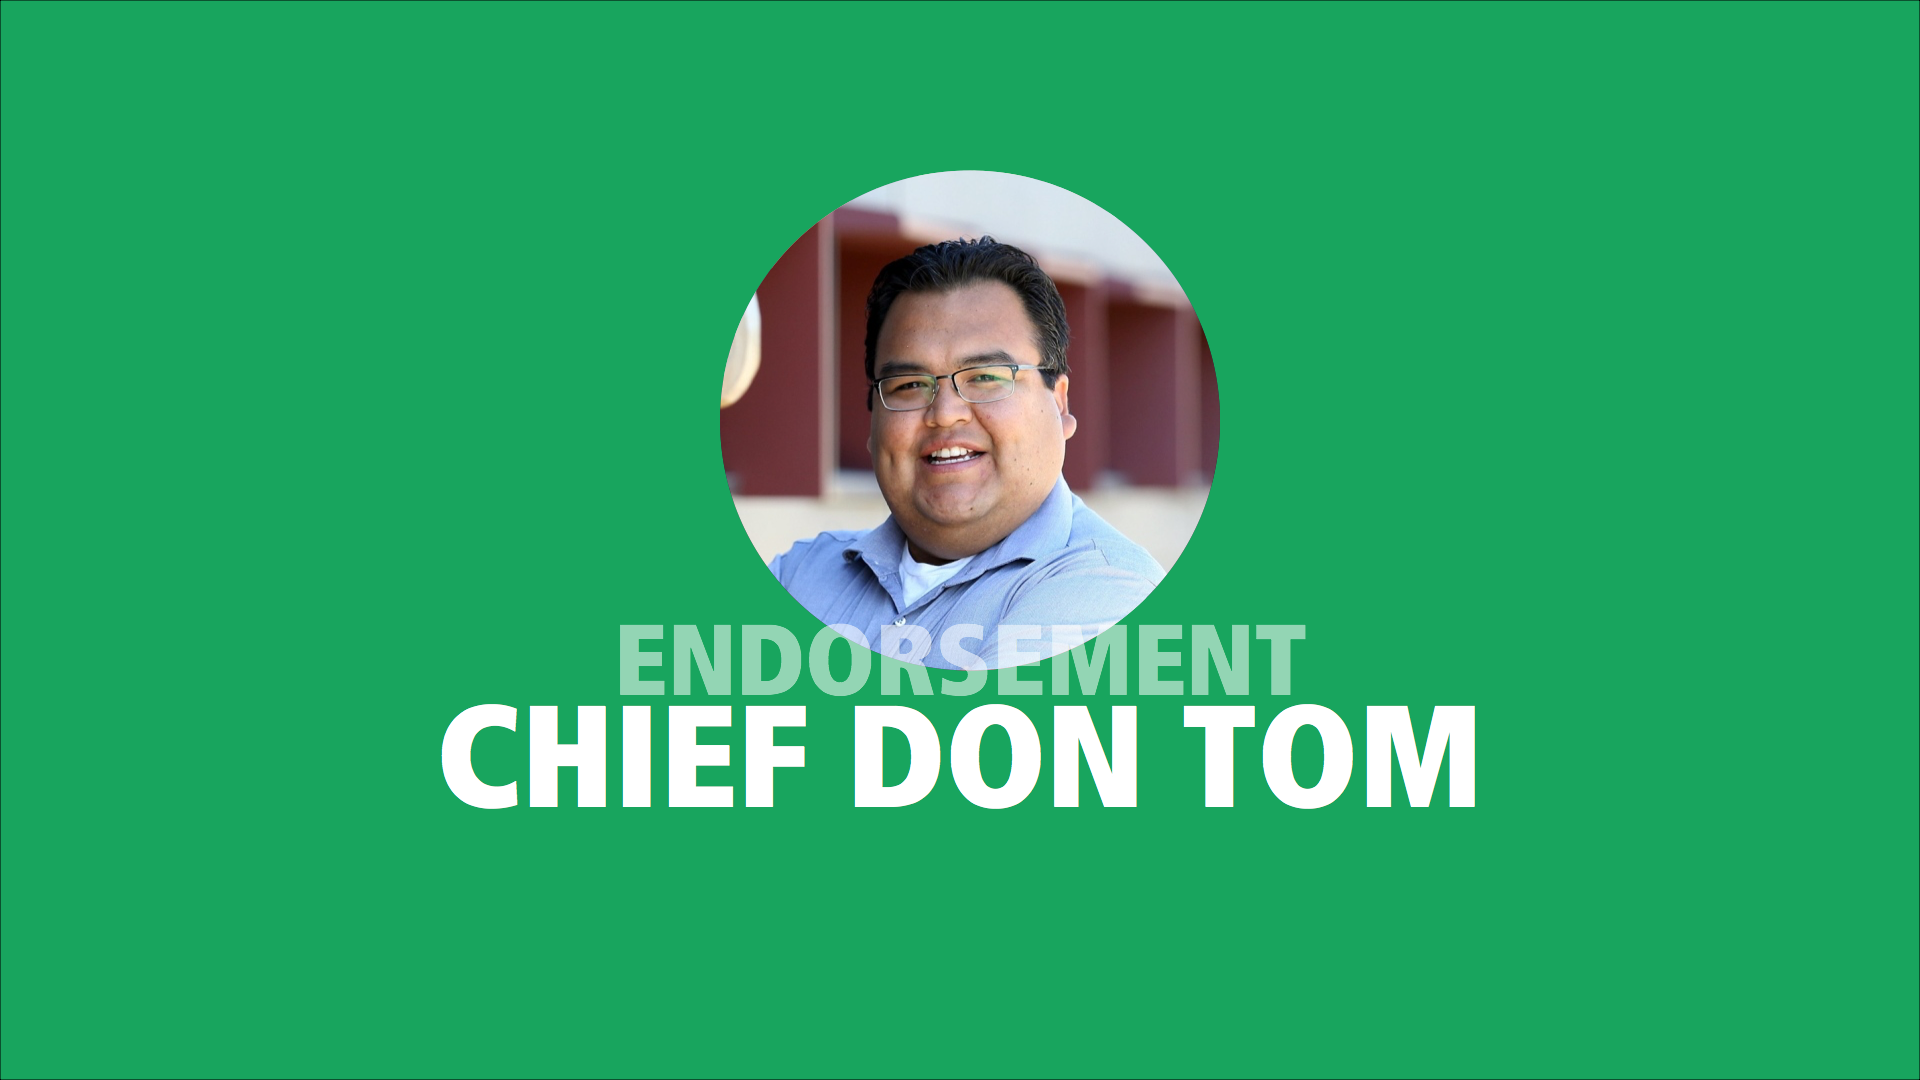 Chief Don Tom endorses Adam Olsen